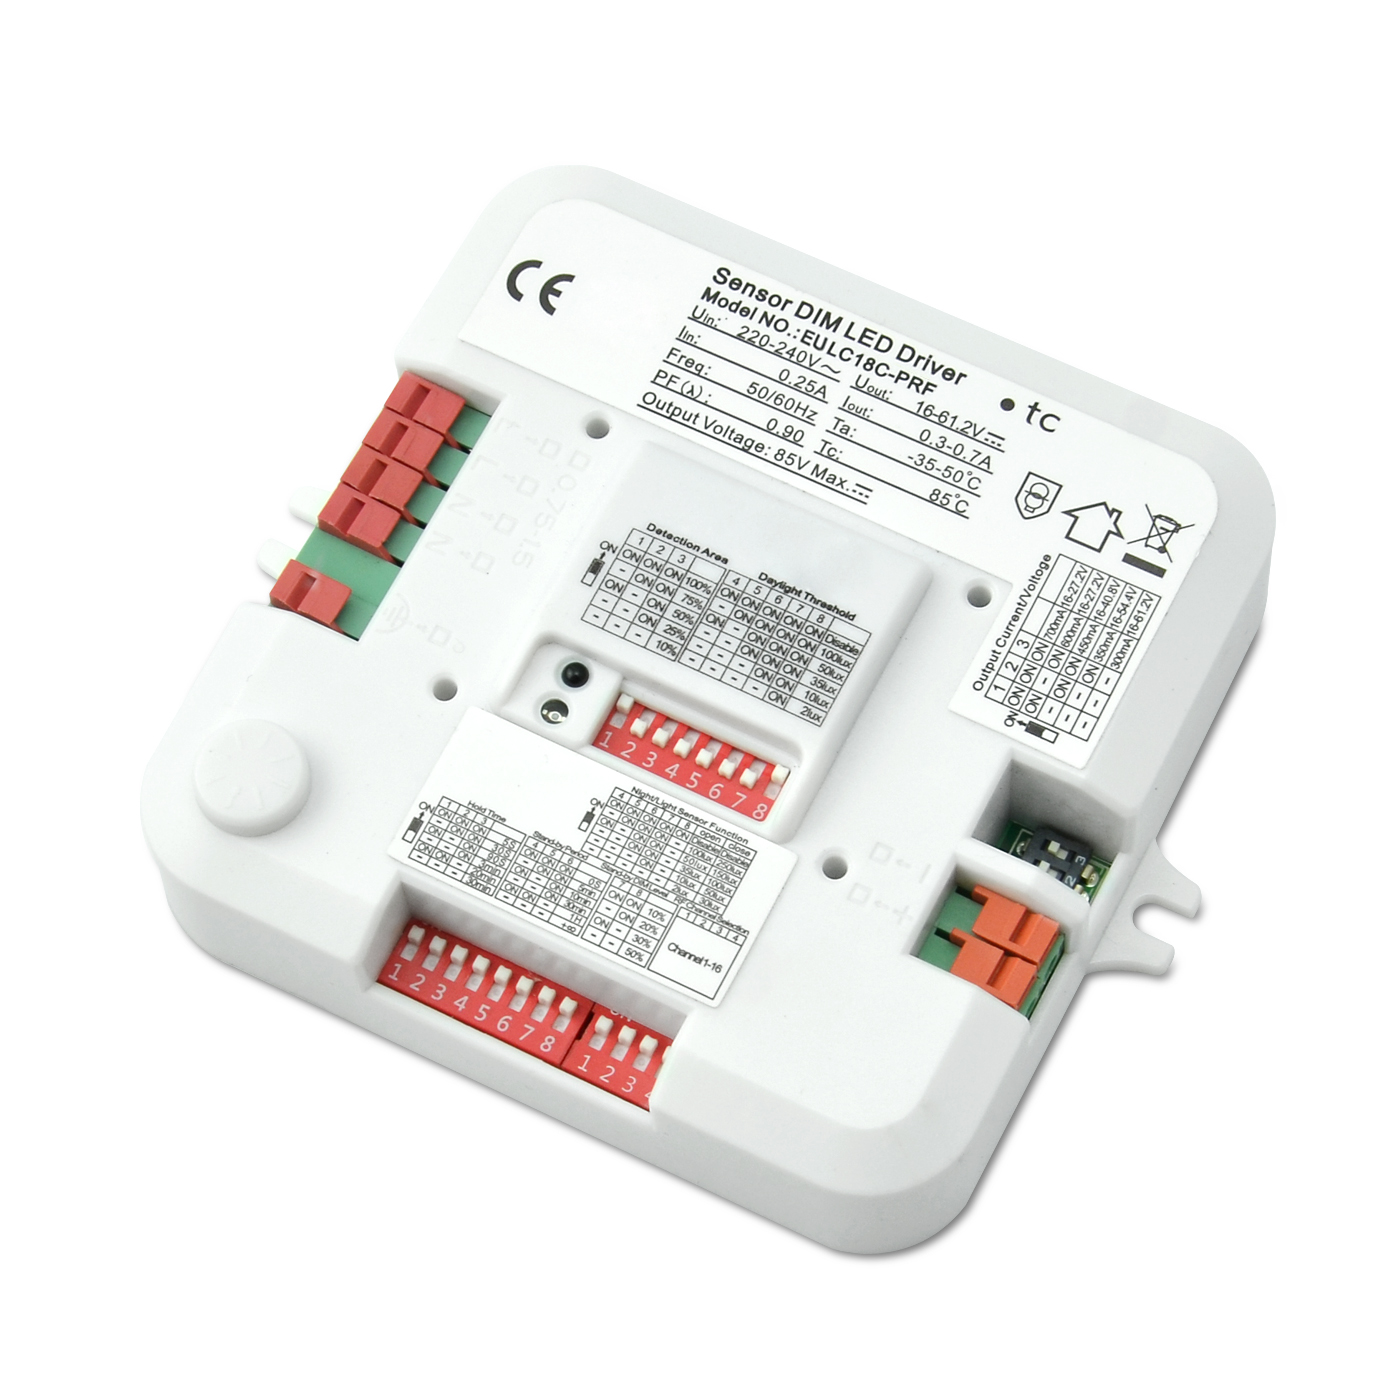 [out of stock]220-240VAC Motion Sensor Dimmable LED Driver